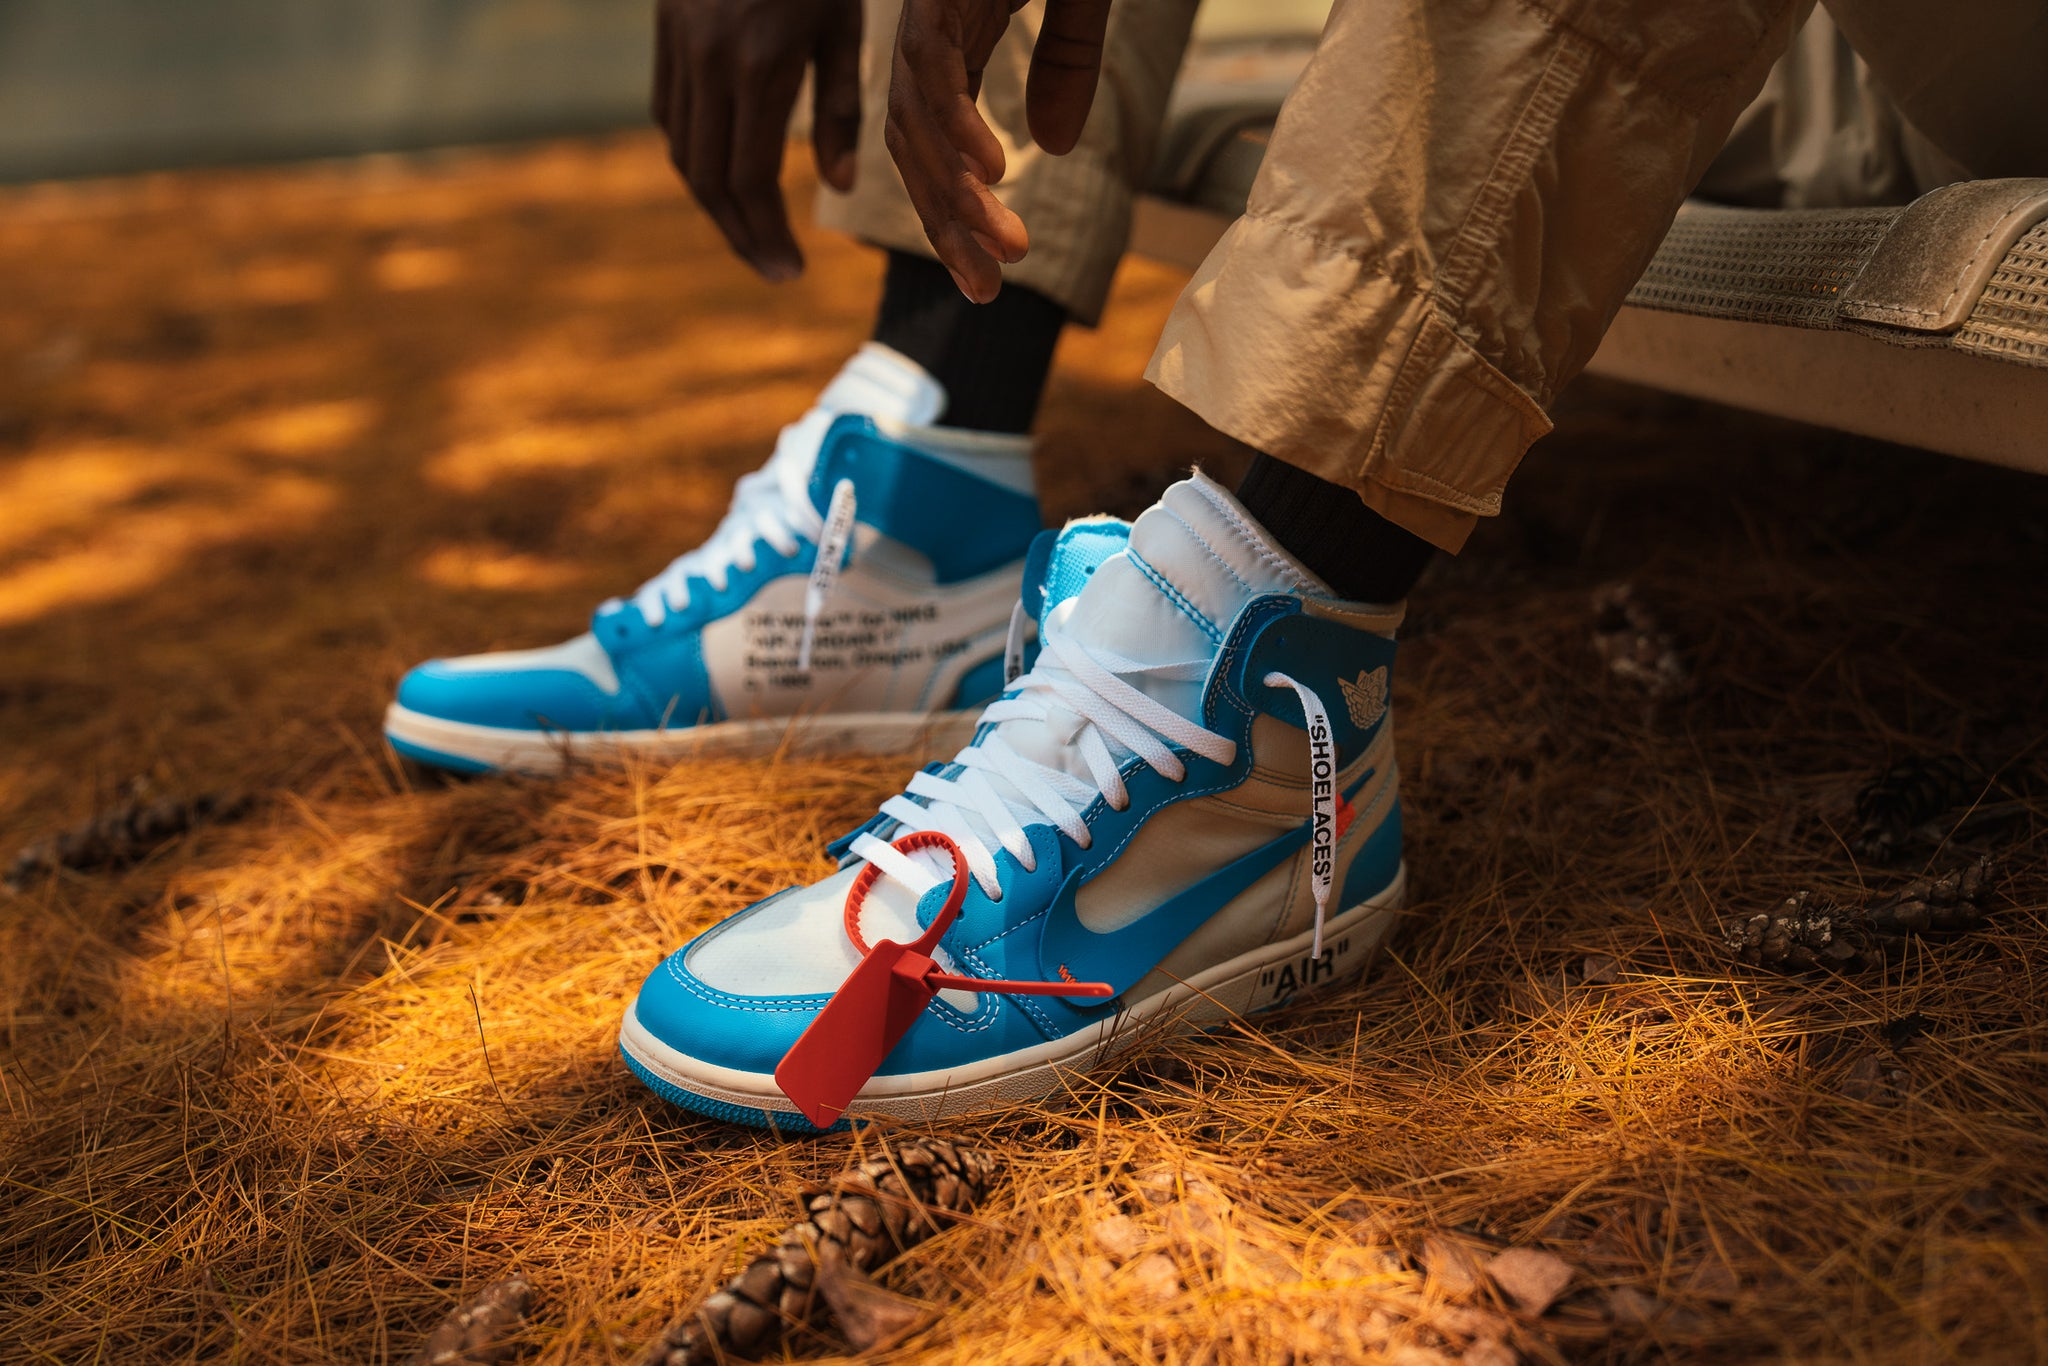 1a1b1bcf624c Virgil Abloh x Air Jordan 1  Powder Blue  Online Raffle